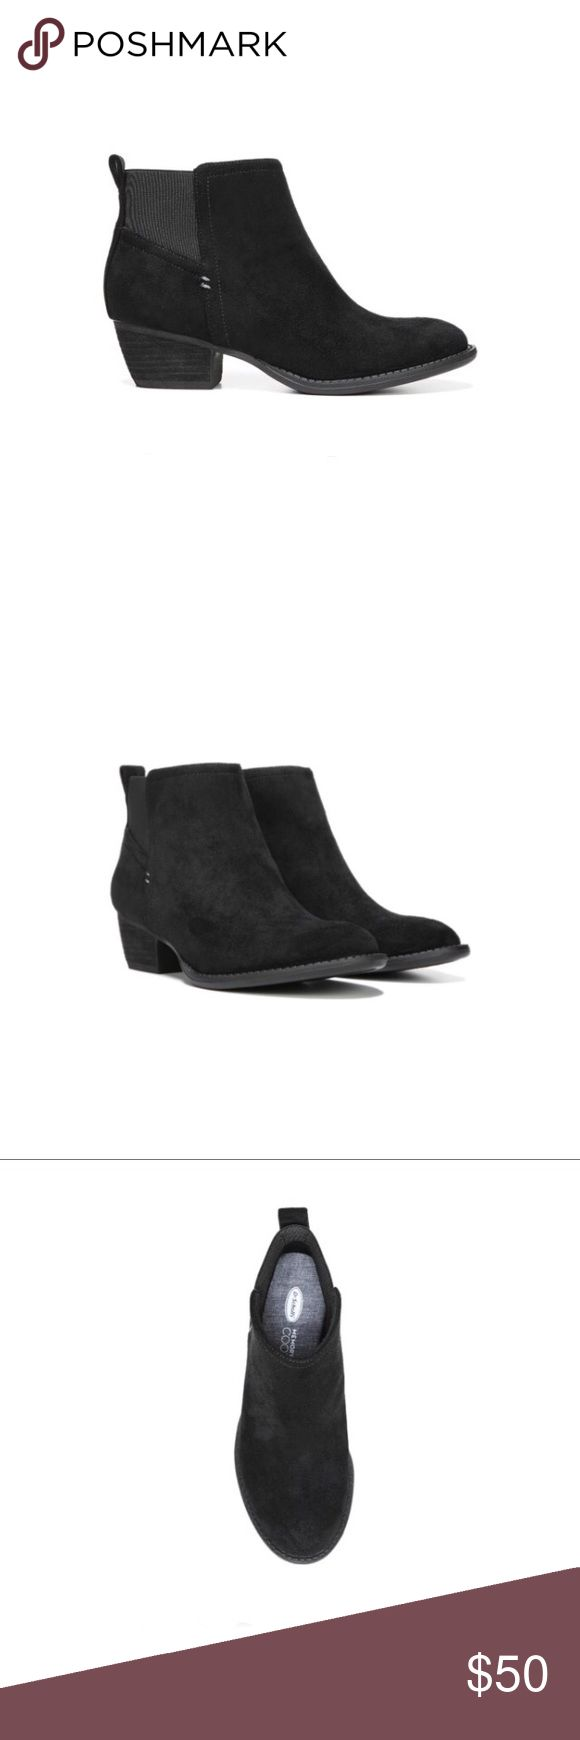 """Dr. Scholl's Jorie block heel Chelsea bootie Per Dr. Scholl's website """" A classic reinvented for comfort. You'll want this bootie for its sheer versatility, everyday style and notch-stitch detailing. The right choice for go-anywhere jeans or cords.  Tumbled finish upper Double gore for easy slip-on Memory Foam Cool Fit™ insole 1 and 1/4 inch leather wrapped stacked block heel"""" These booties are new with box and true to size. Please let me know if you have any questions :) Dr. Scholl's Shoes…"""